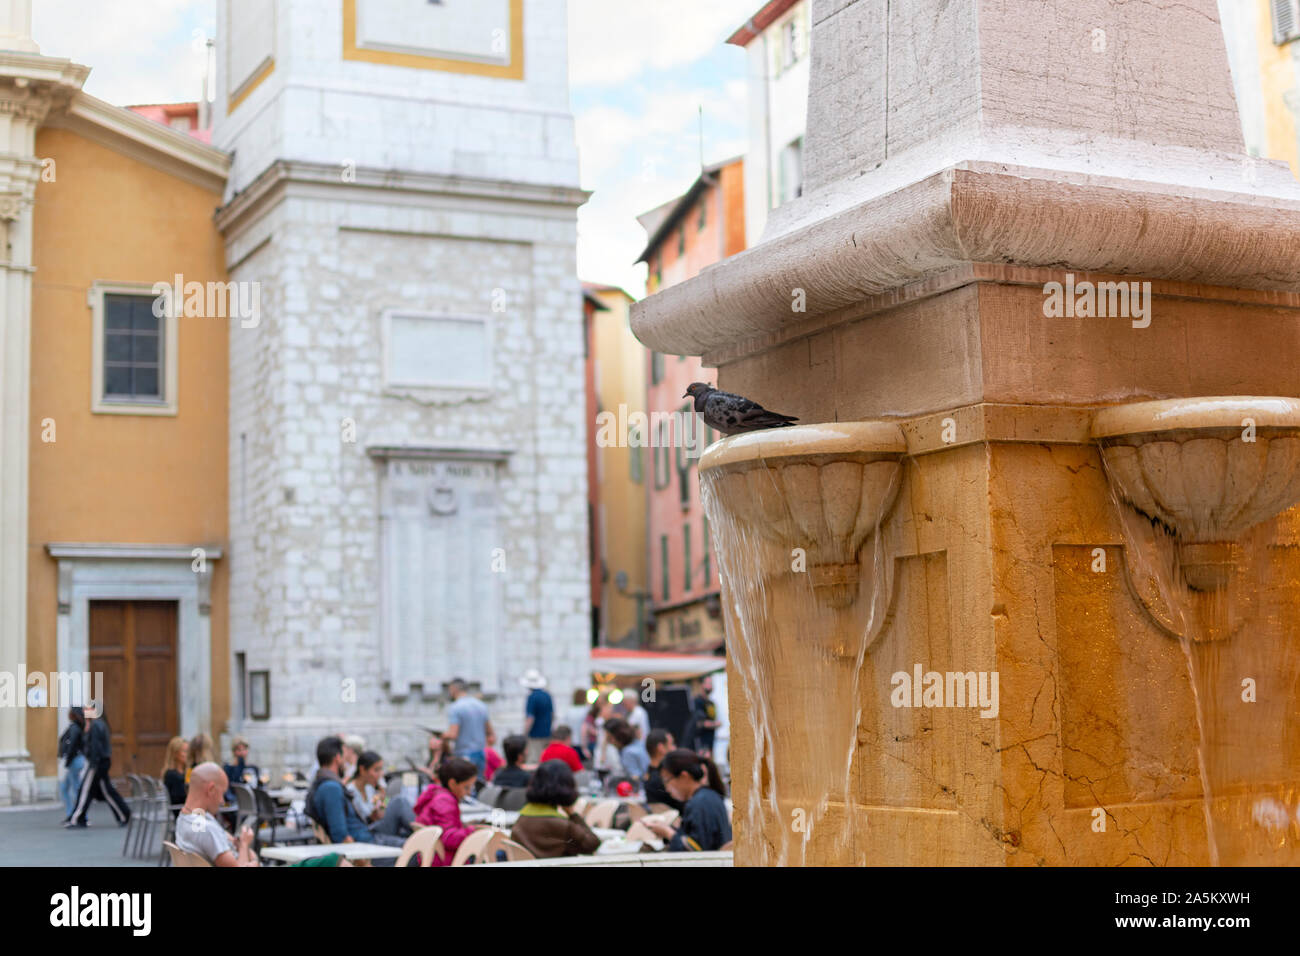 A pigeon sits on a water shelf on a public fountain in front of the Cathedral Sainte Reparate in Place Rossetti, on the French Riviera in Nice France Stock Photo